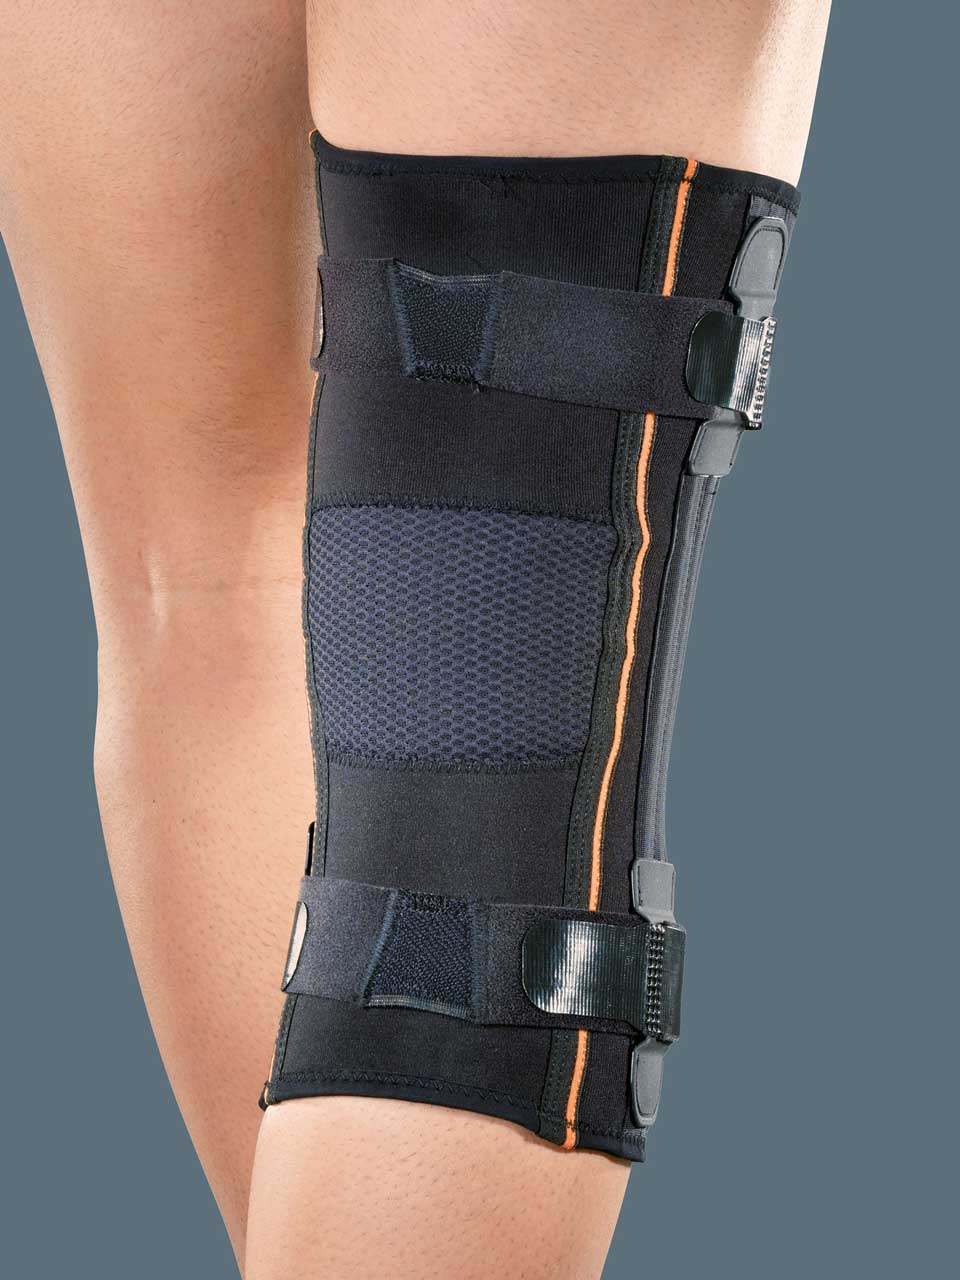 GENUFIT 08A - Knee support